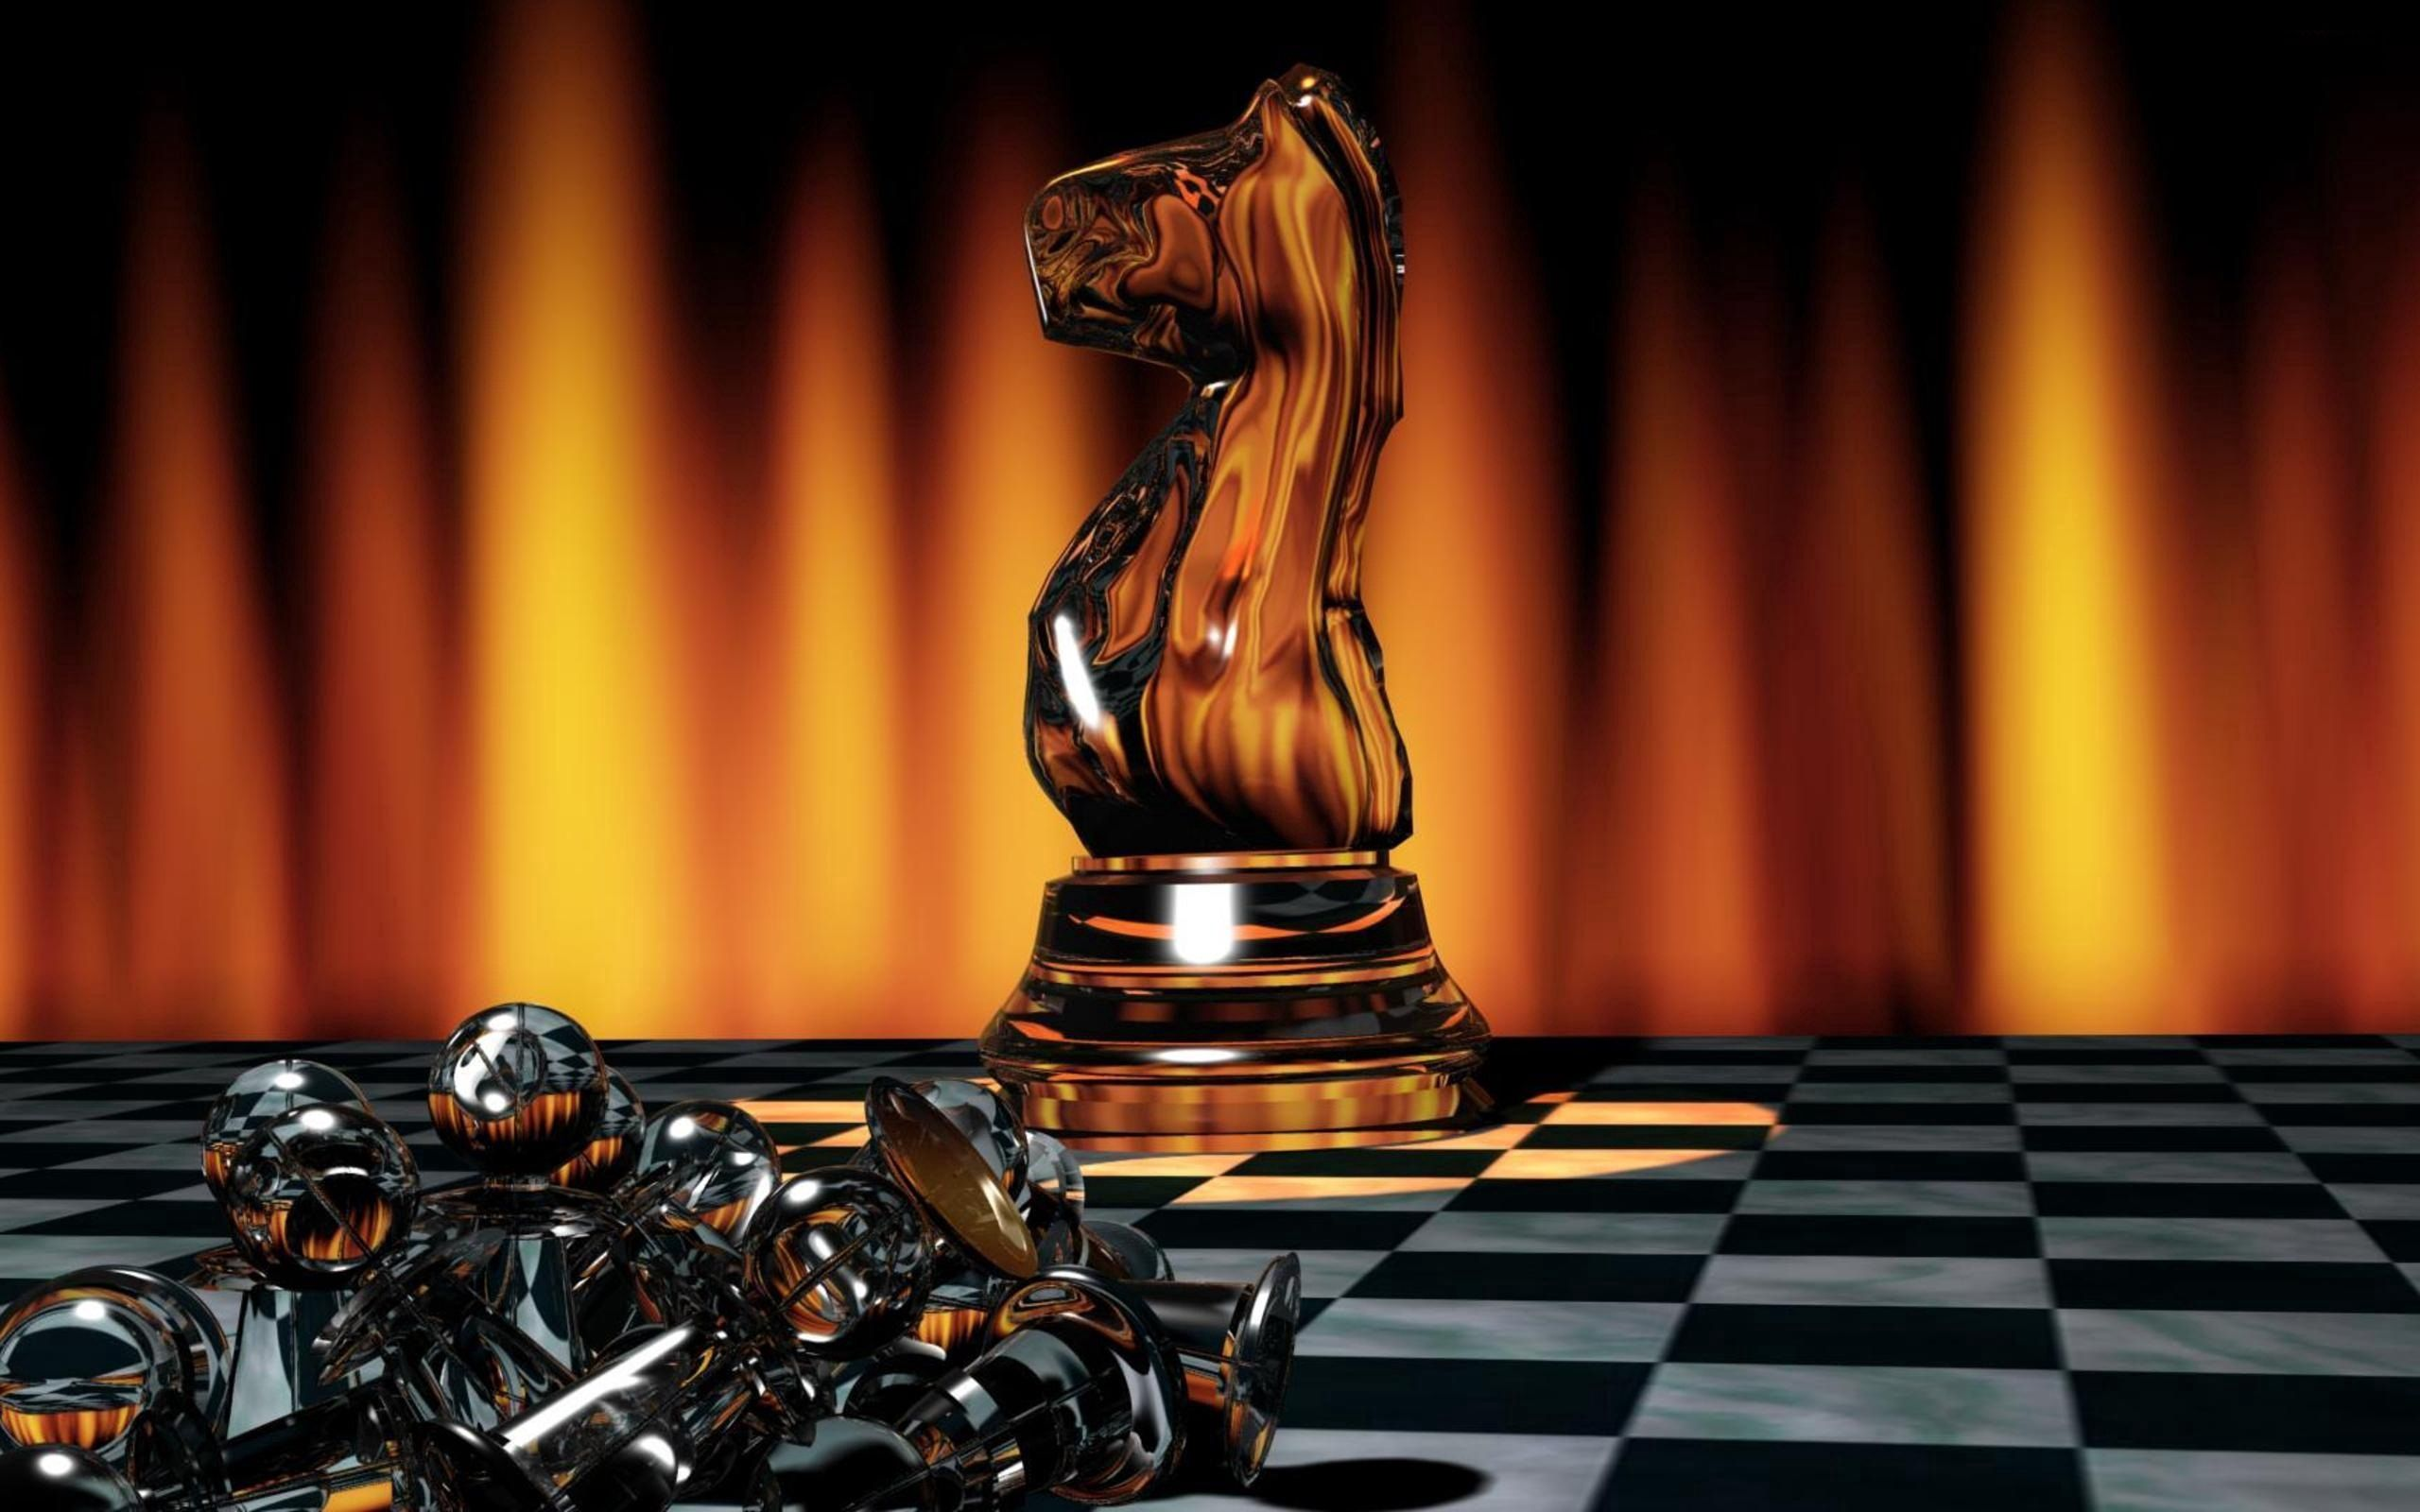 2560x1600 Wallpaper chess, game, board, chess pieces, light